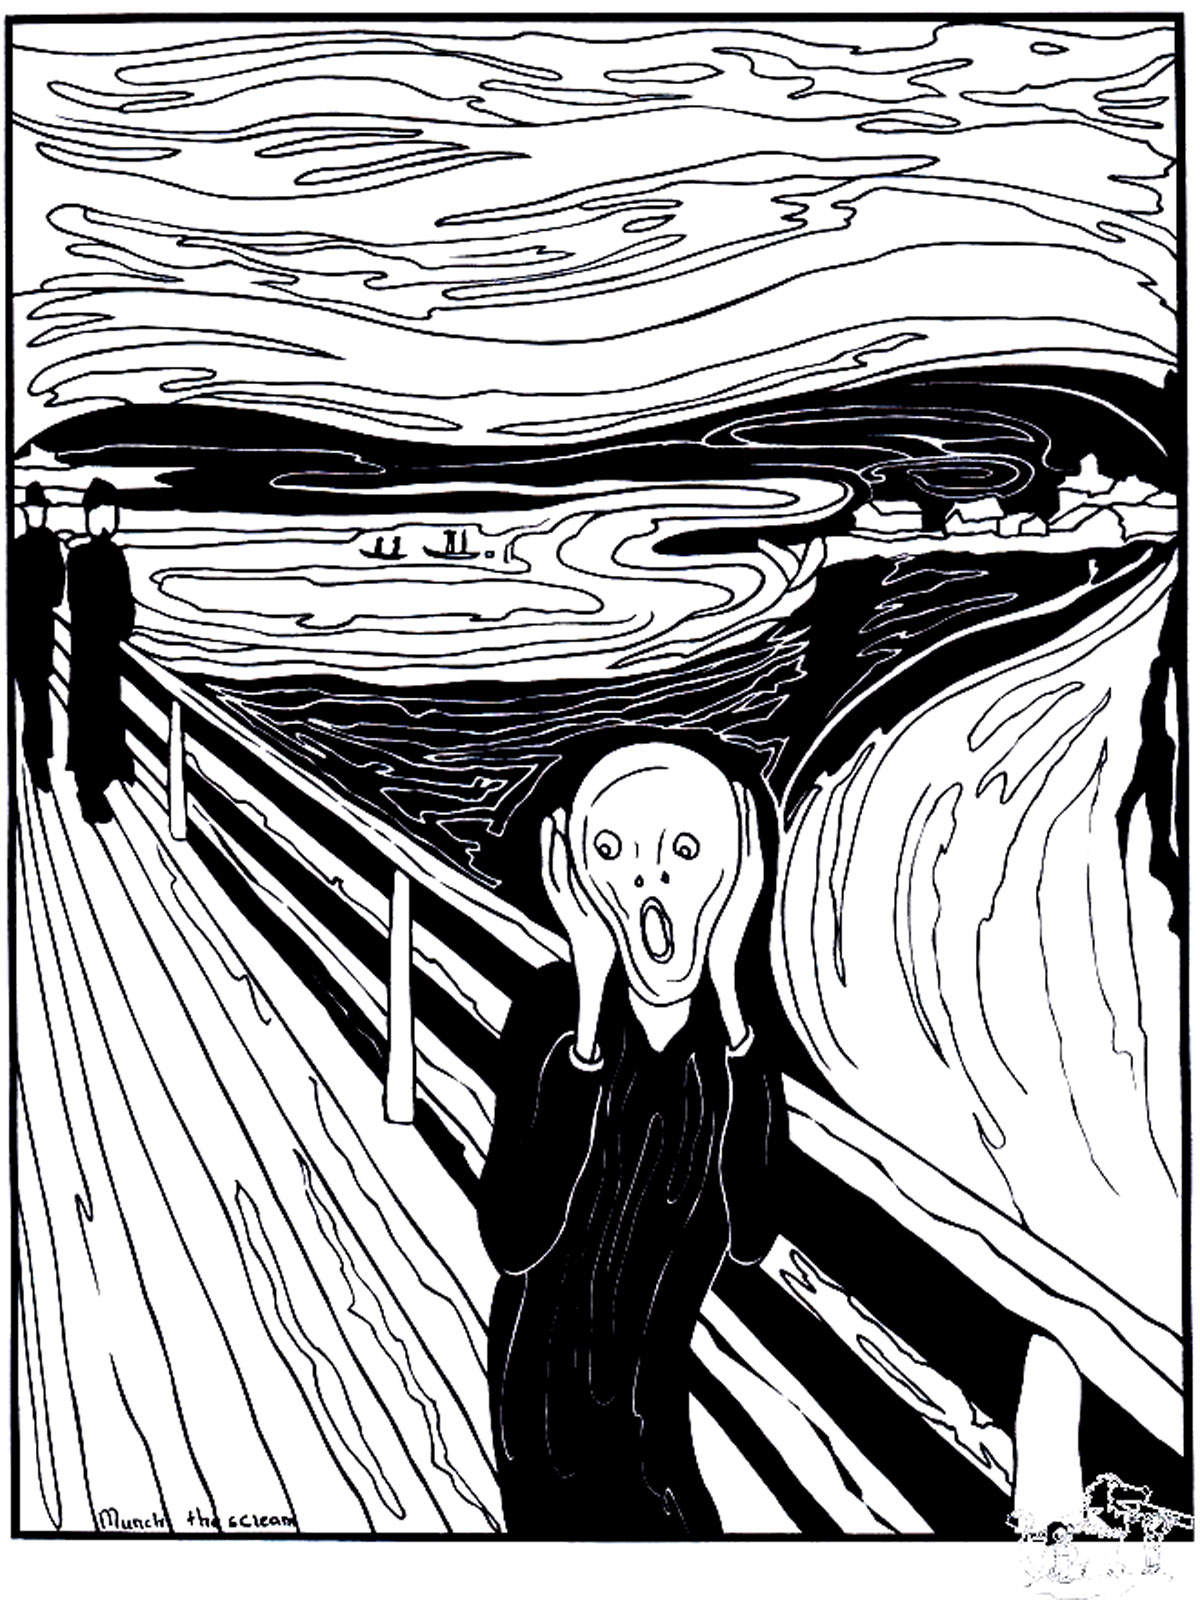 Munch the scream Masterpieces